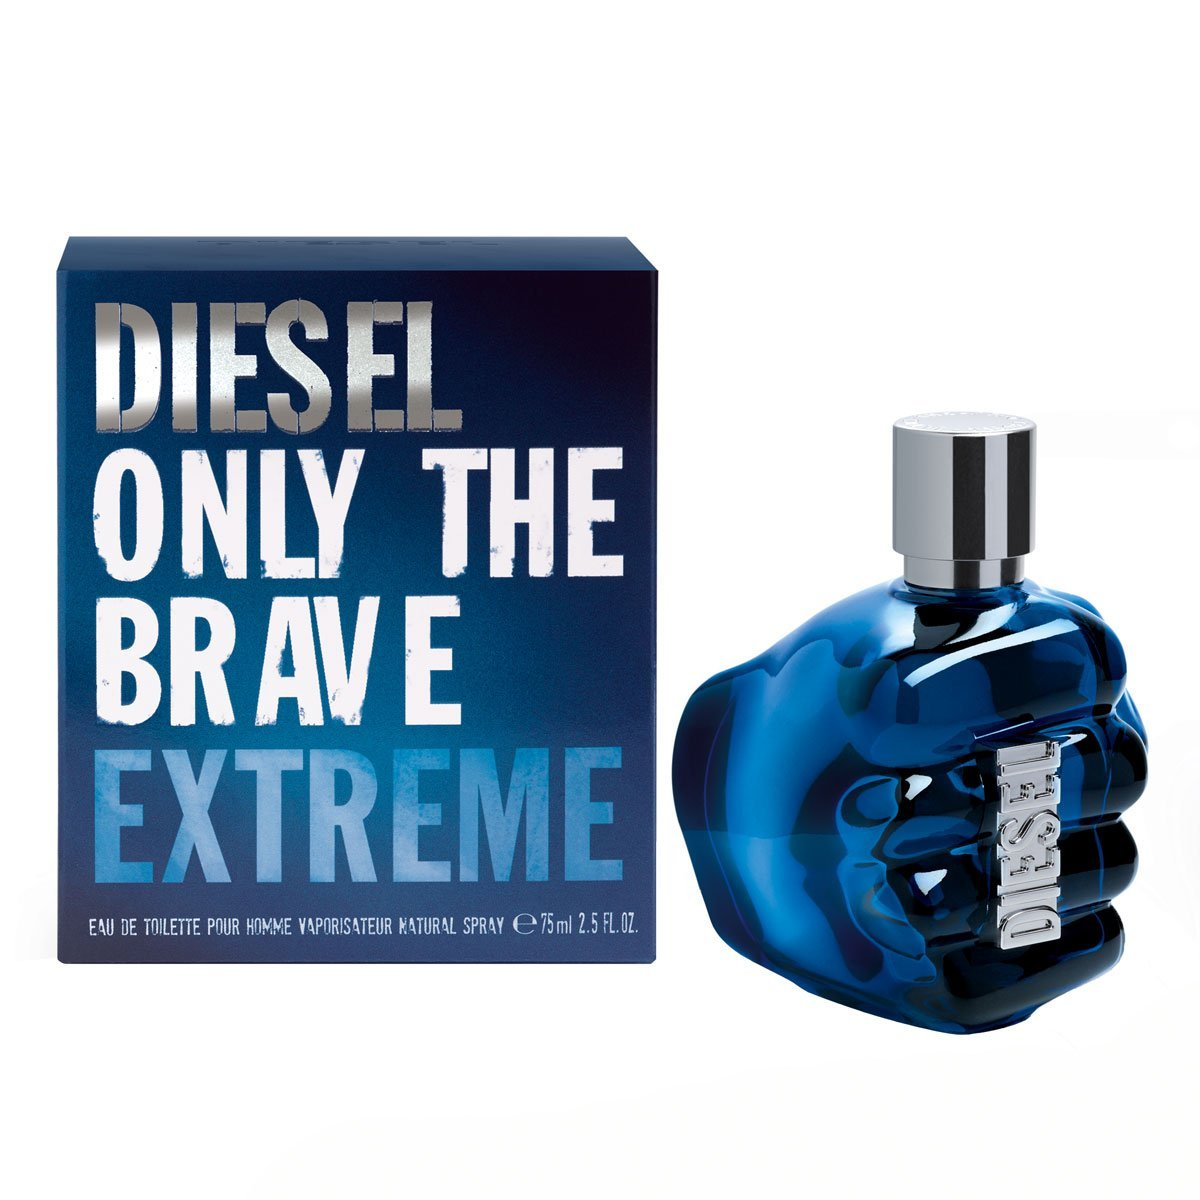 Diesel Only the Brave Extreme (EDT,Men,TESTER,75ml) T-MLX20906 Vīriešu Smaržas